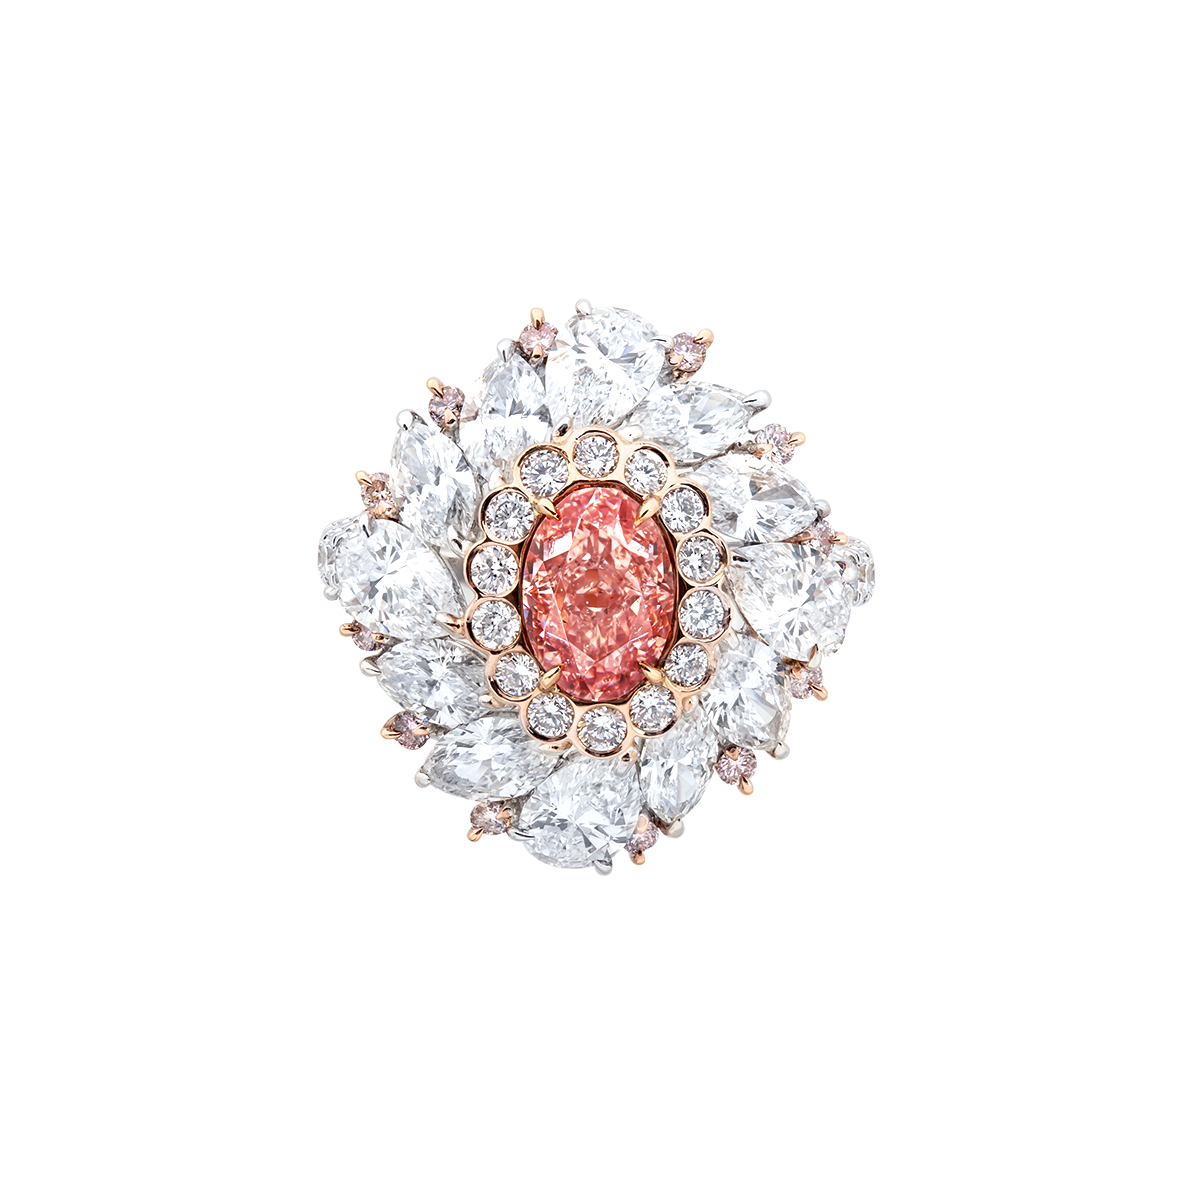 1.13克拉 ARGYLE阿蓋爾橘粉鑽鑽戒